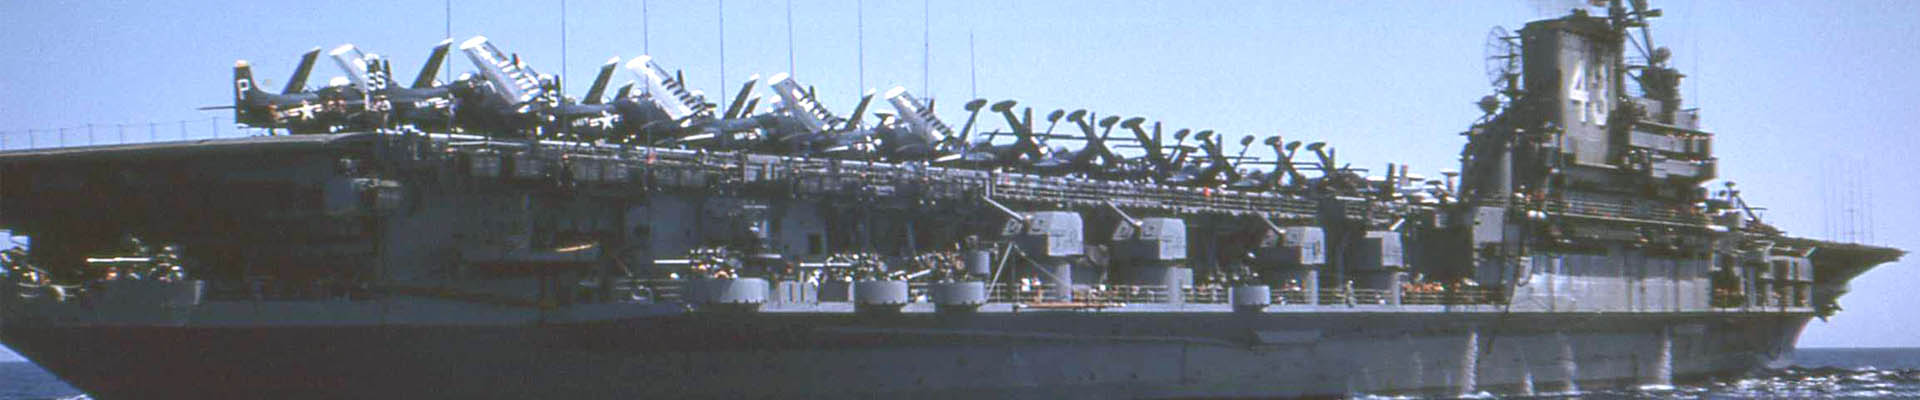 'USS Coral Sea Tribute Site' from the web at 'http://www.usscoralsea.net/banner3/b3_cva4319540000MED06GS.jpg'